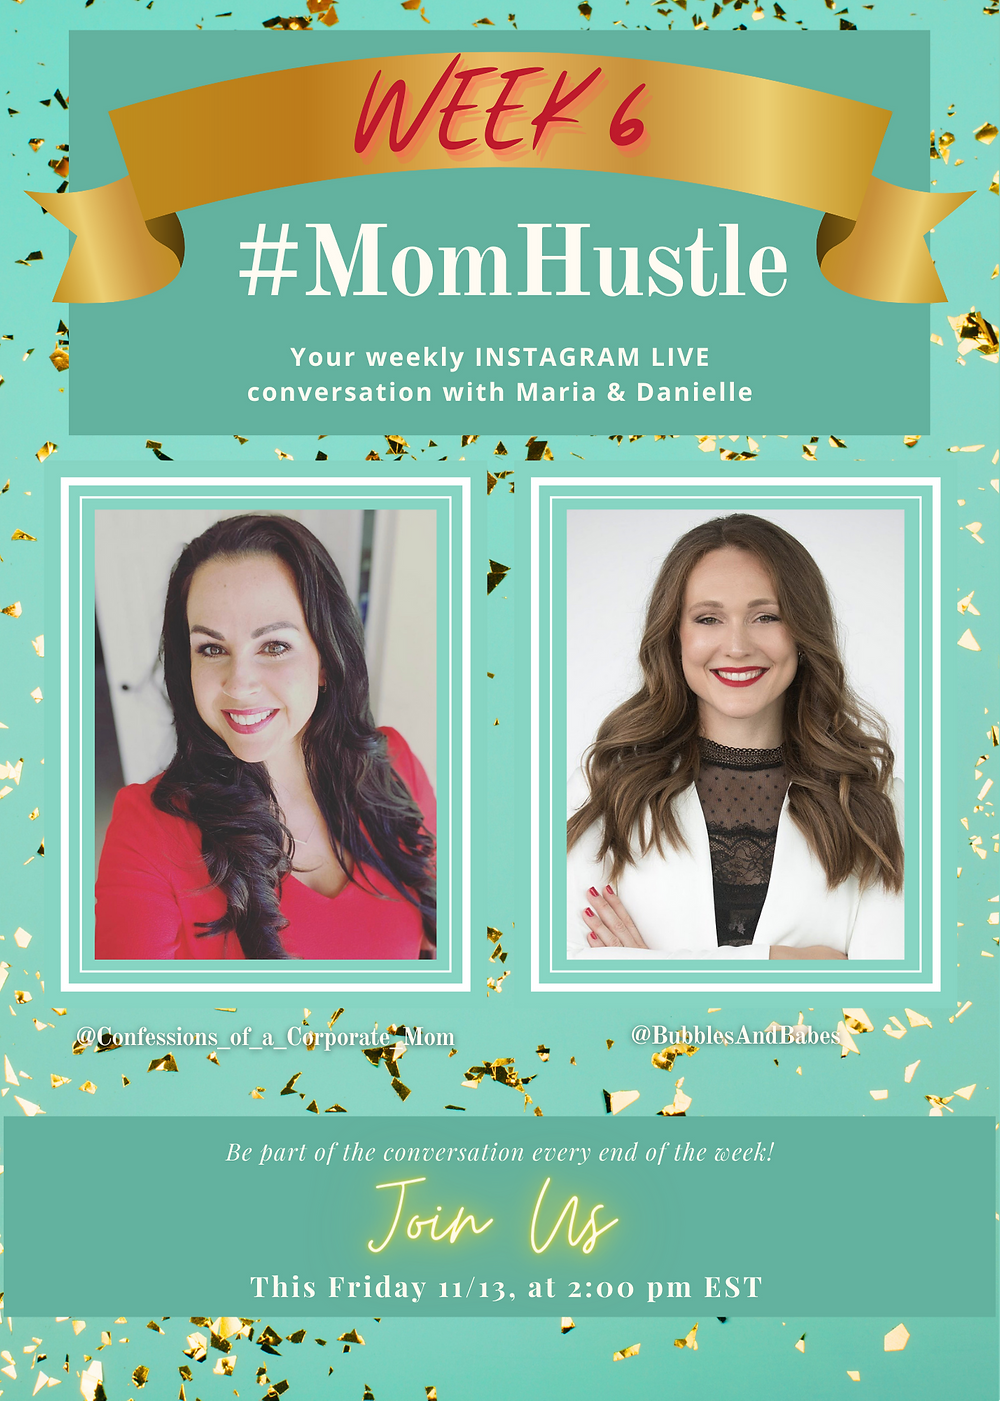 Announcement for the Danielle & Maria weekly #MomHustle live conversation. Join Us!